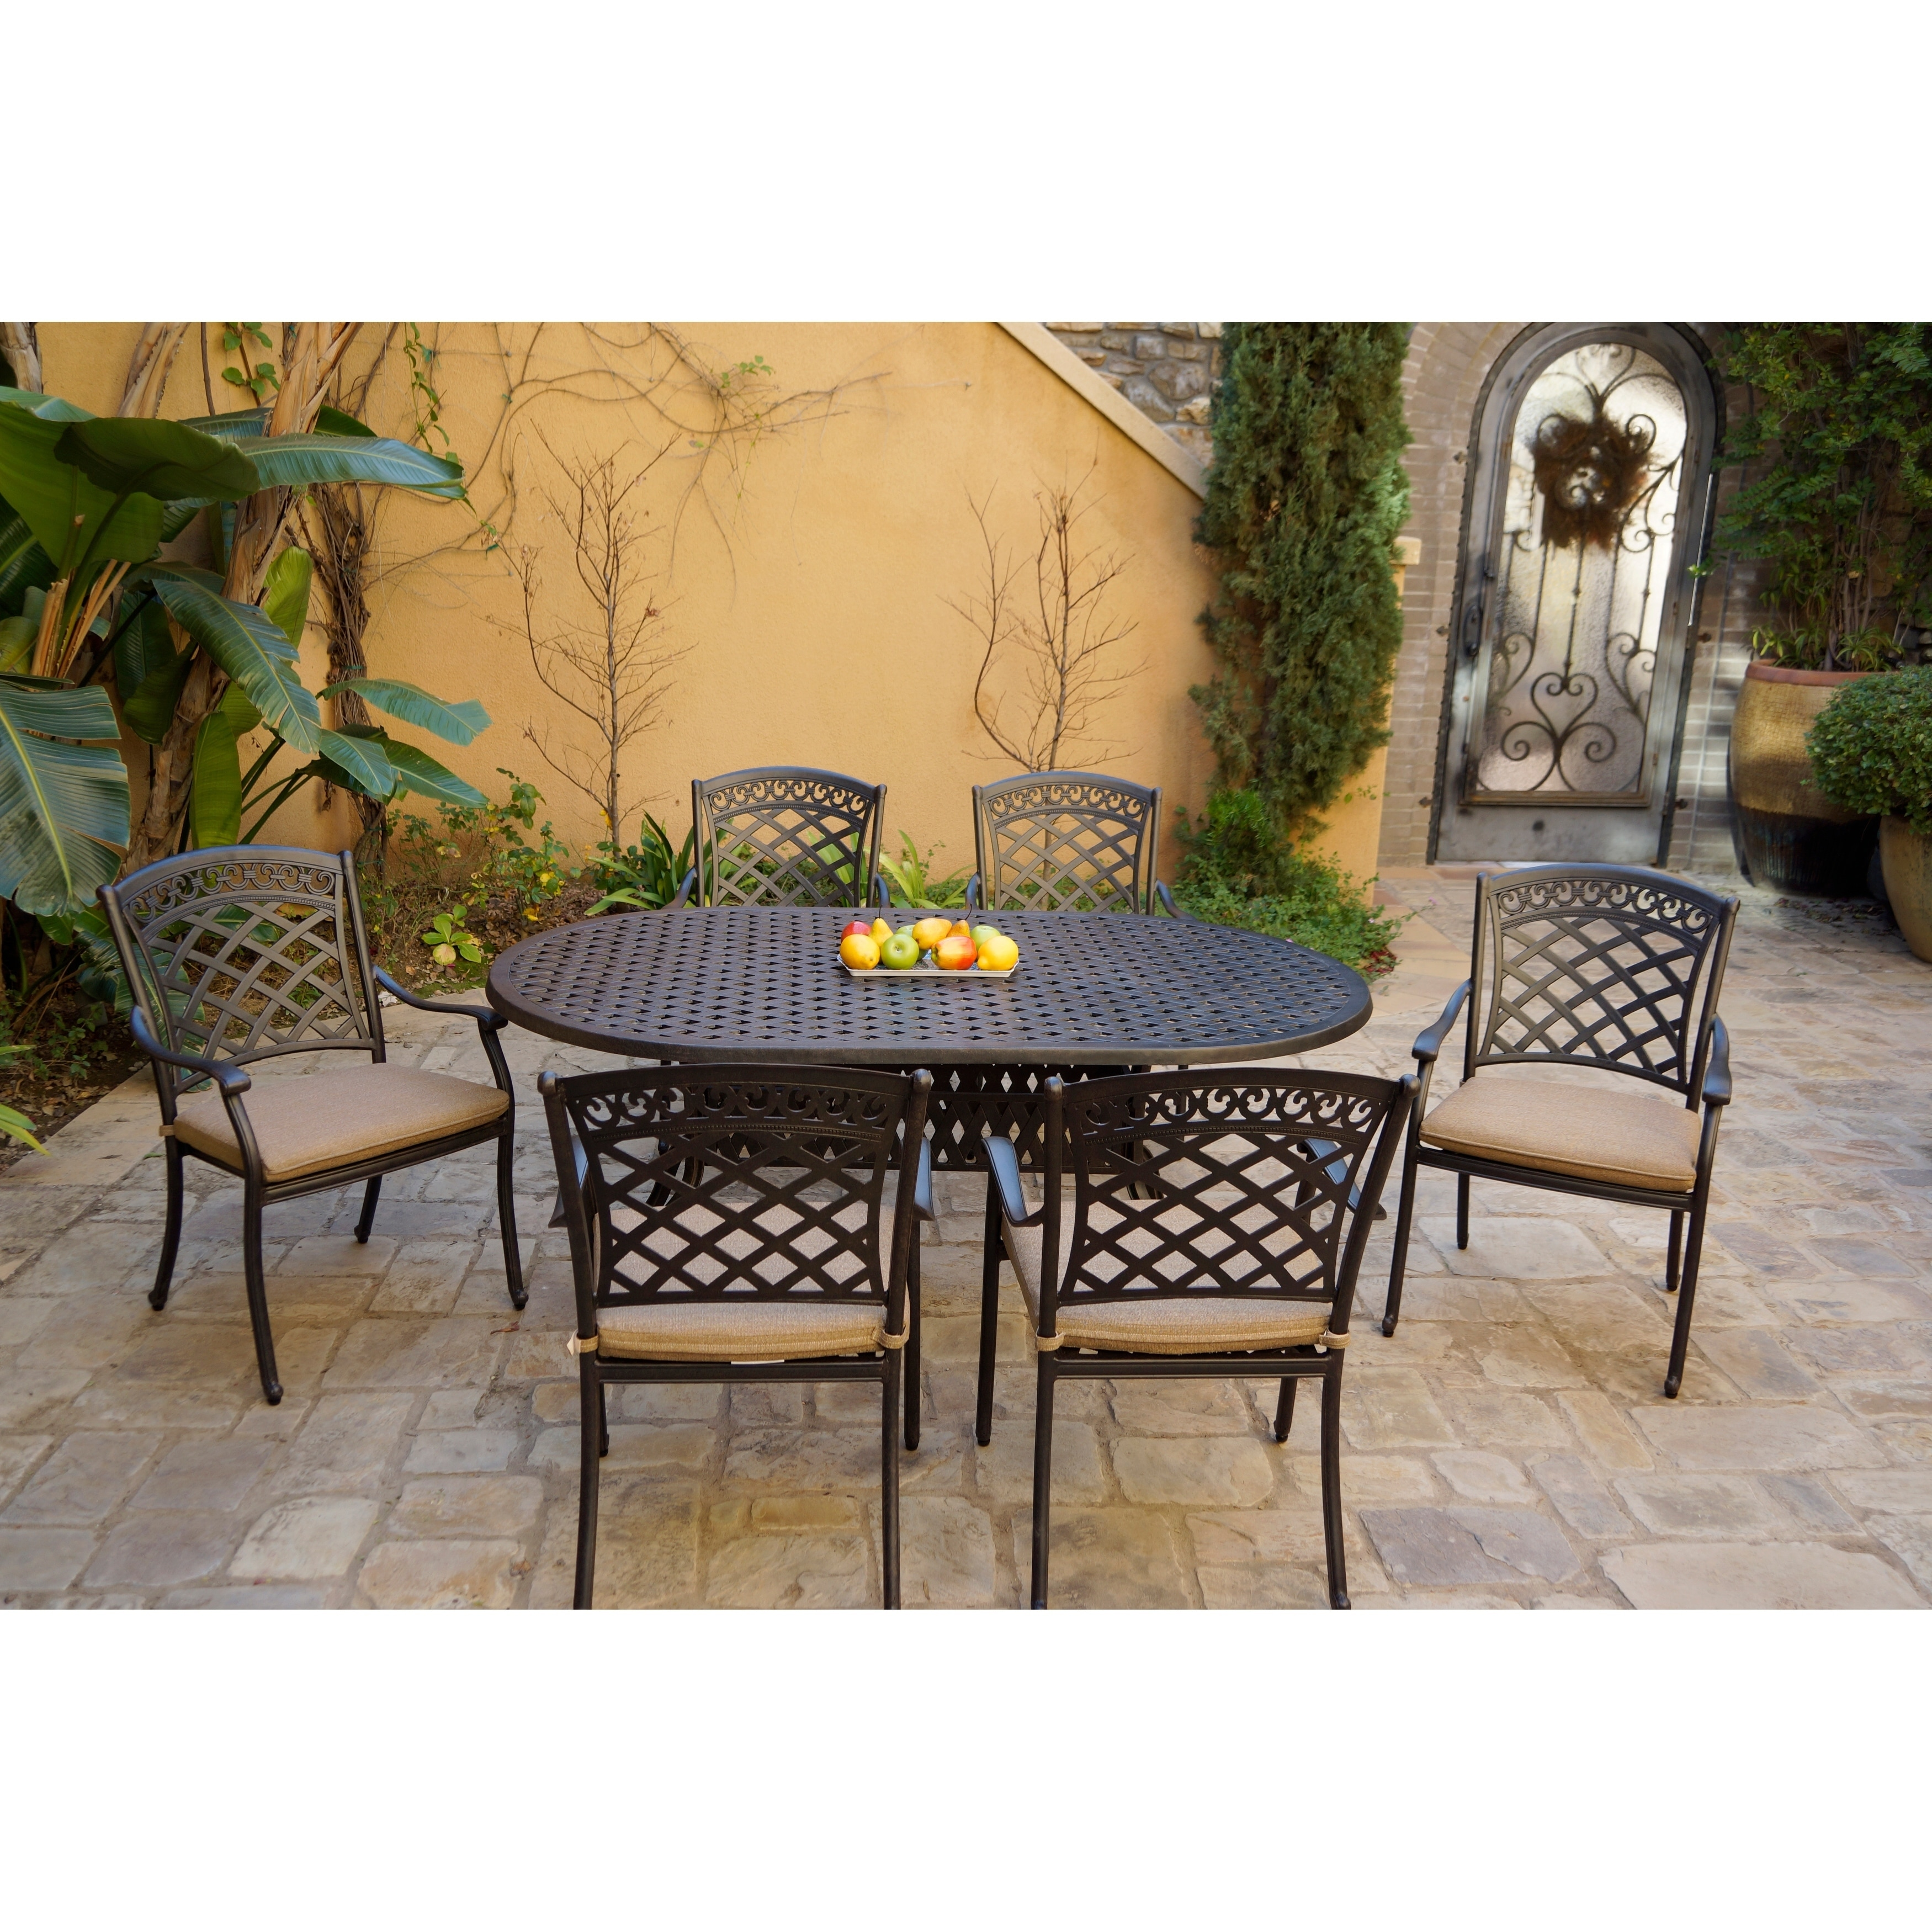 7 Piece Patio Dining Set 42 X 72 Inch Oval Table